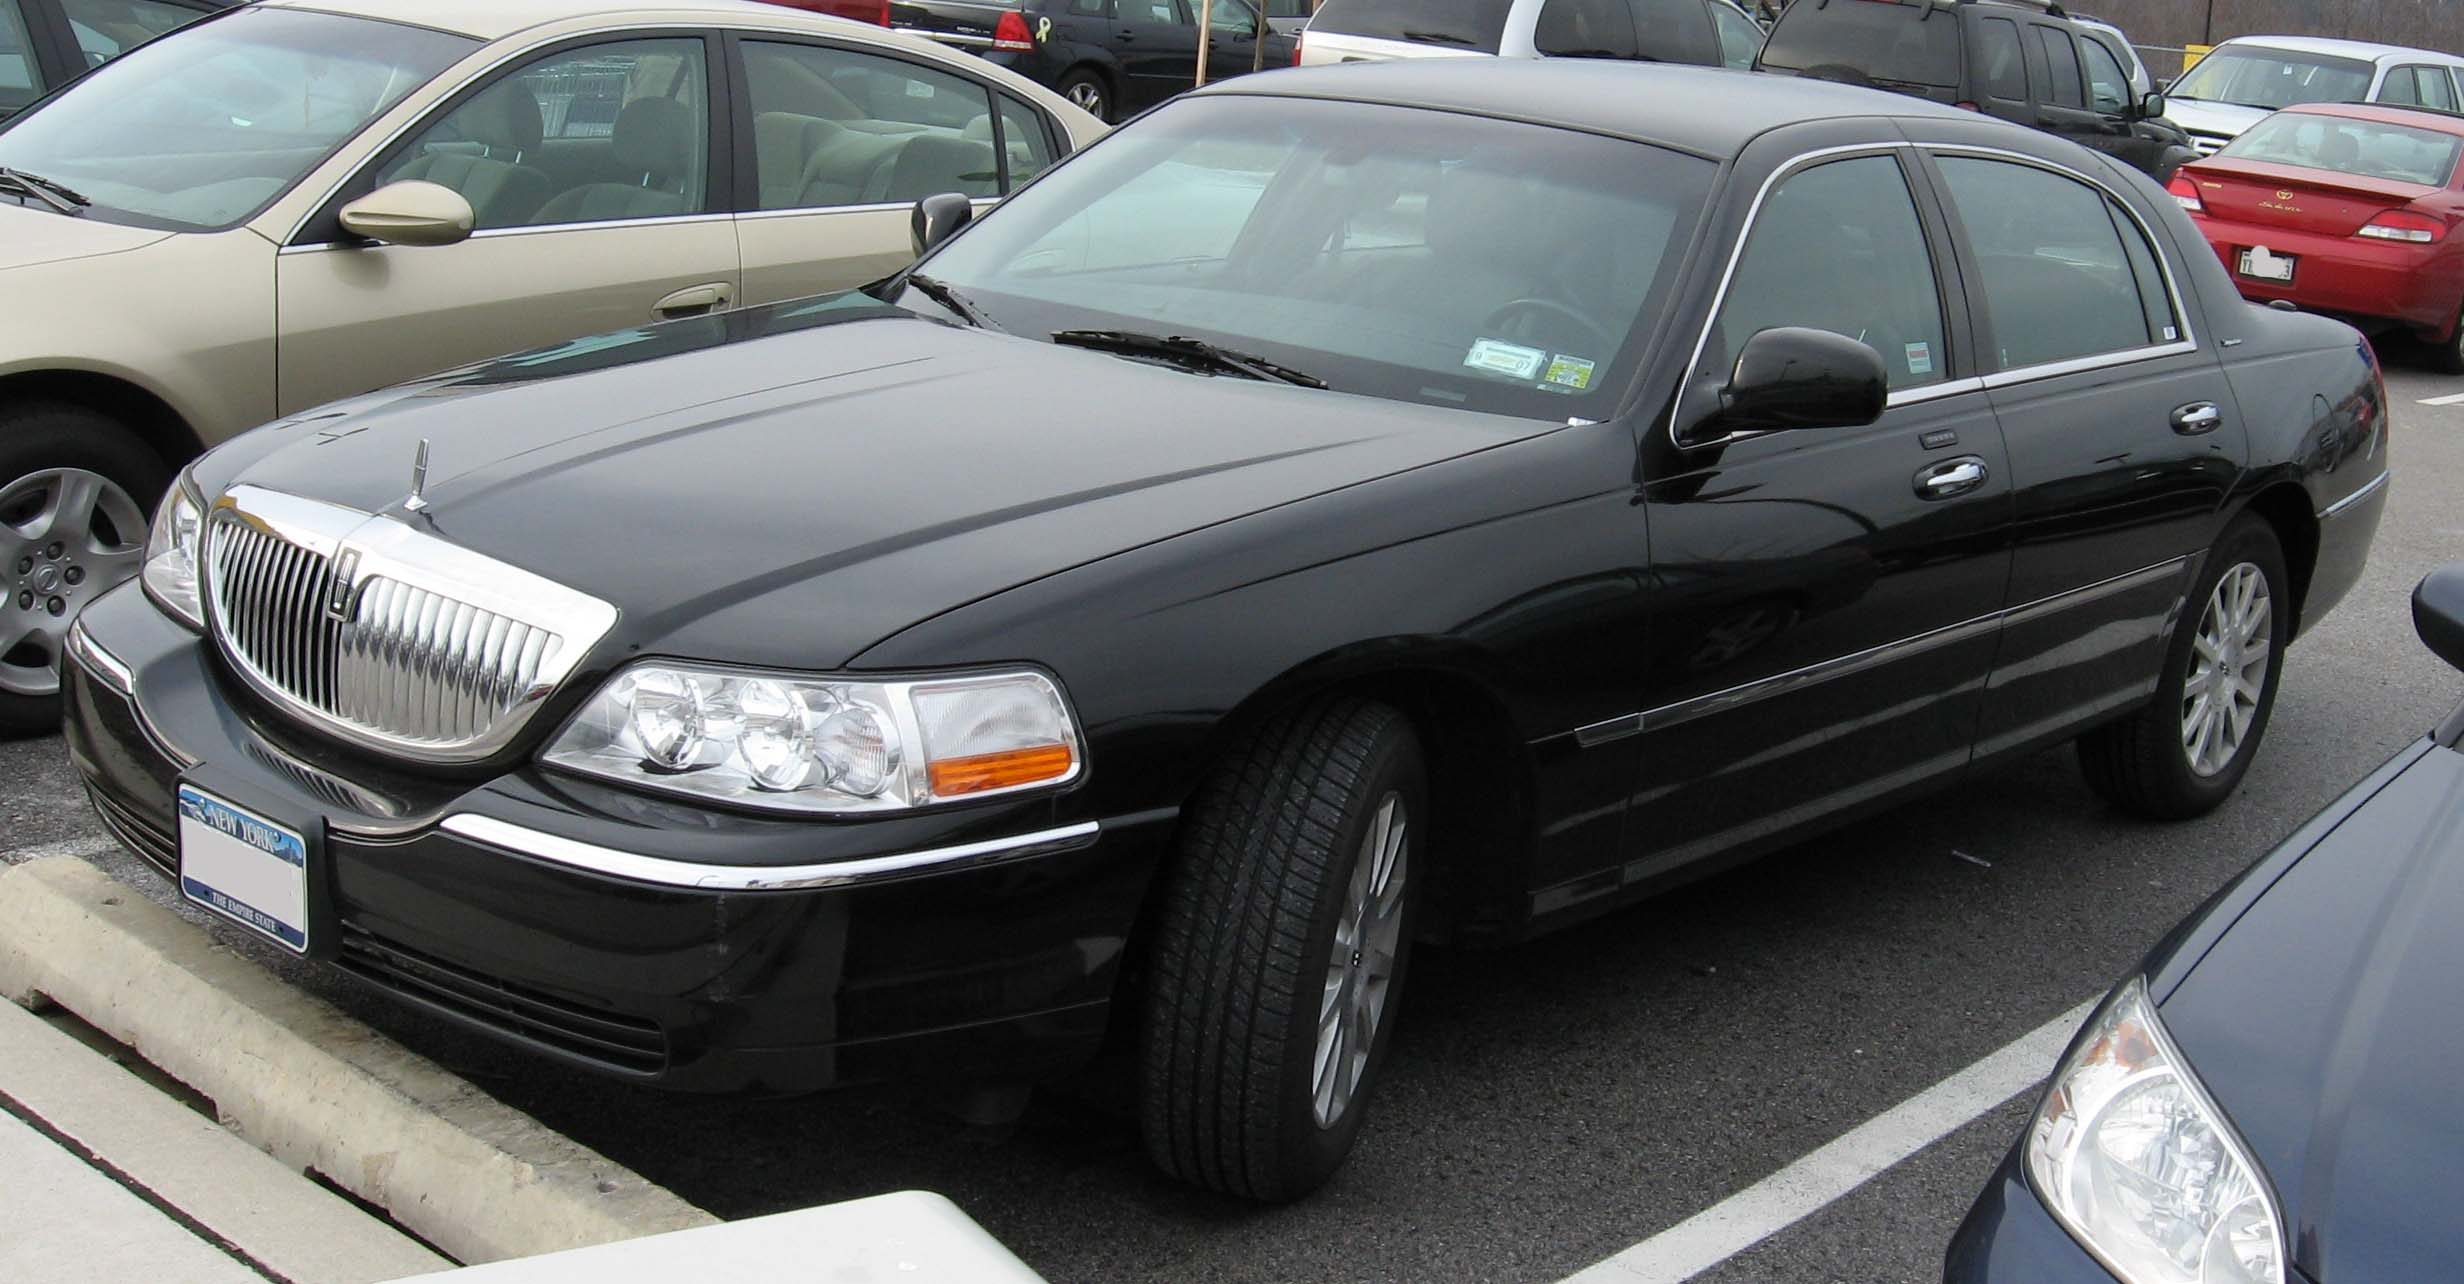 2003 Lincoln Town Car Image 8